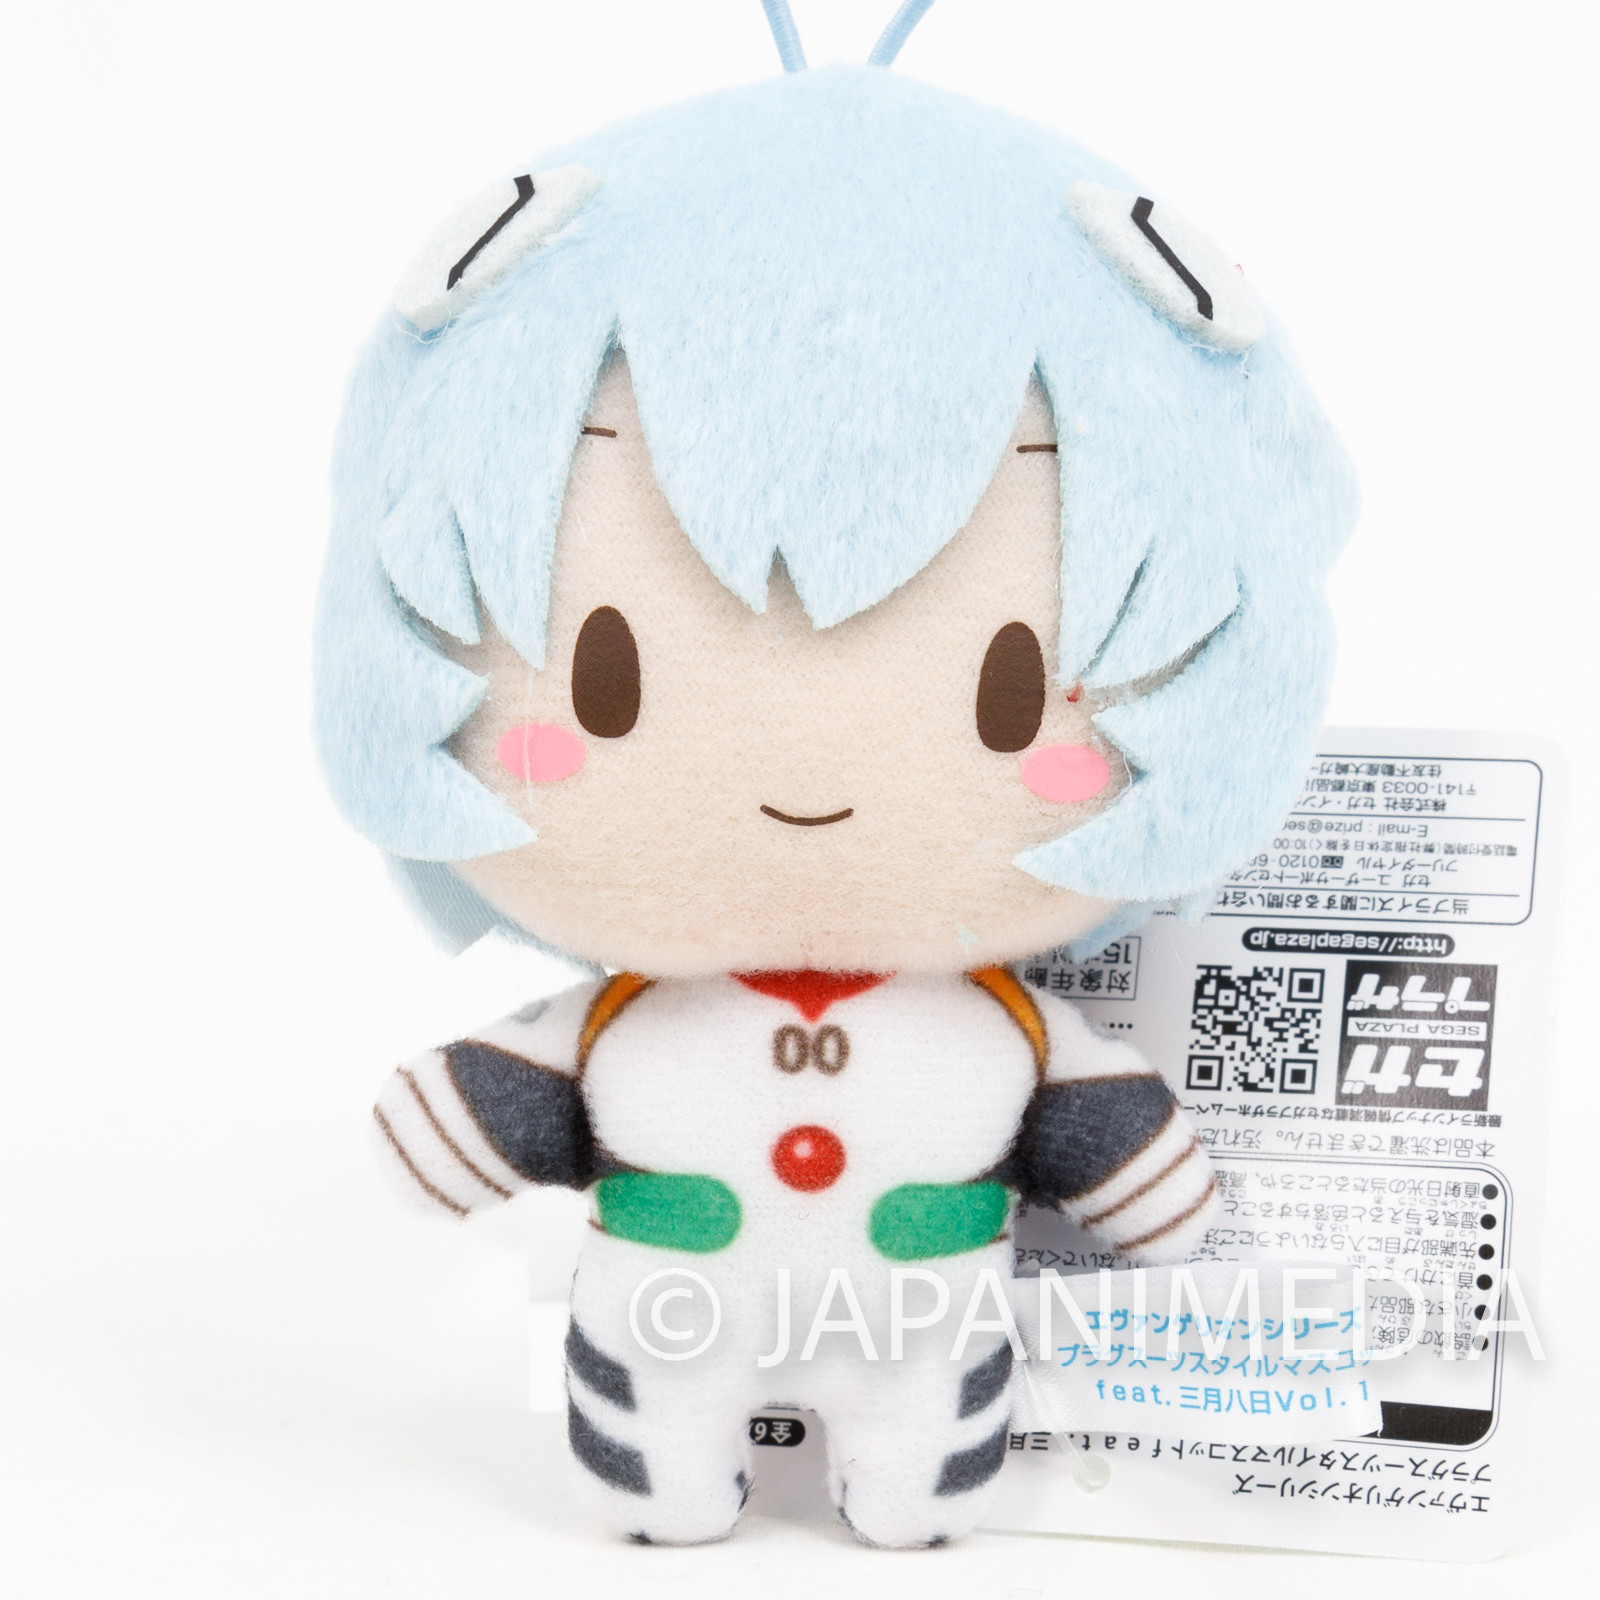 Evangelion Rei Ayanami Plug Suit Mini Plush Doll SEGA JAPAN ANIME MANGA